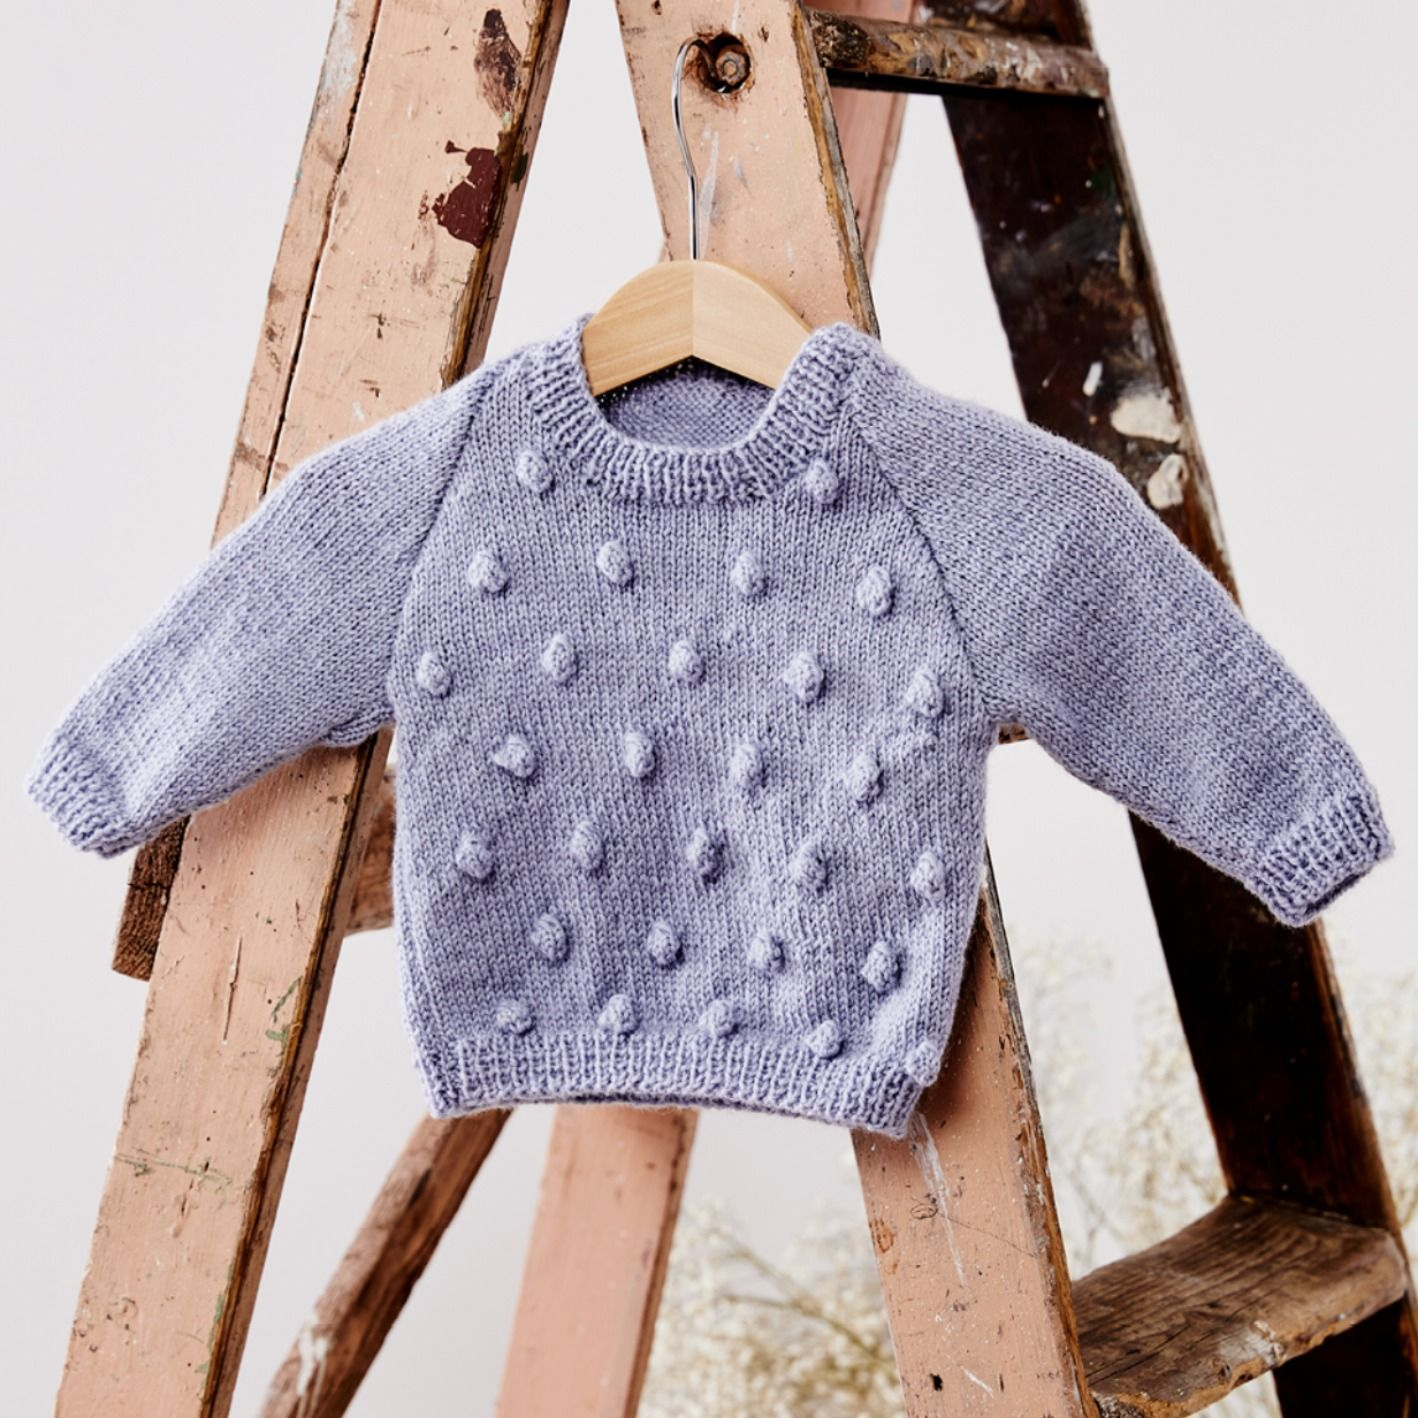 A600 Babies Bobble Jumper | Jumper knitting pattern, Baby ...